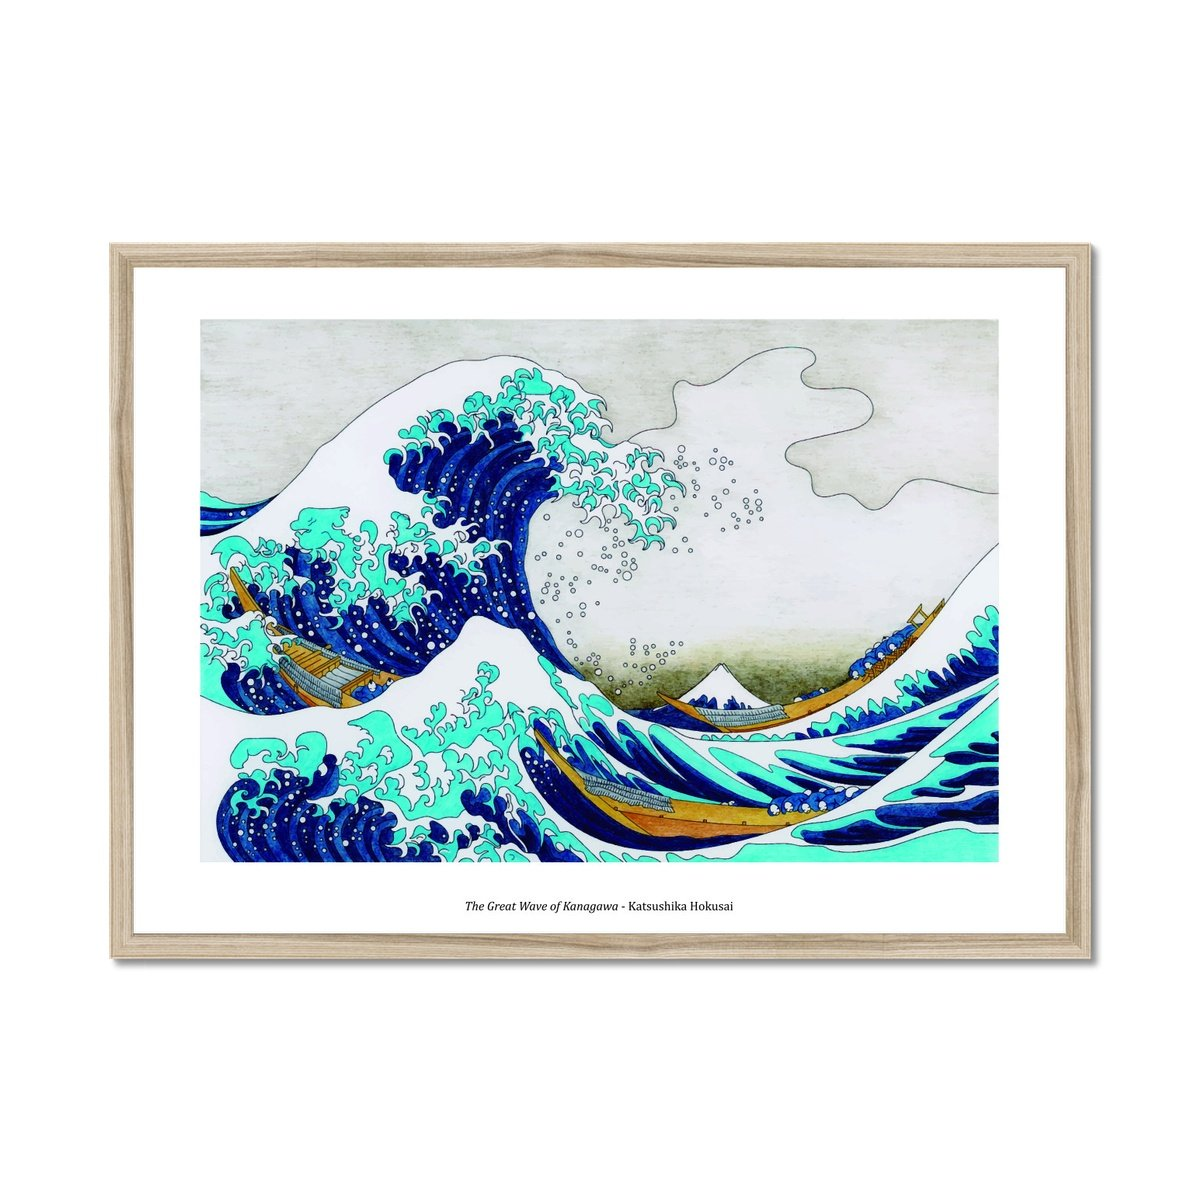 The Great Wave of Kanagawa - Poster Framed